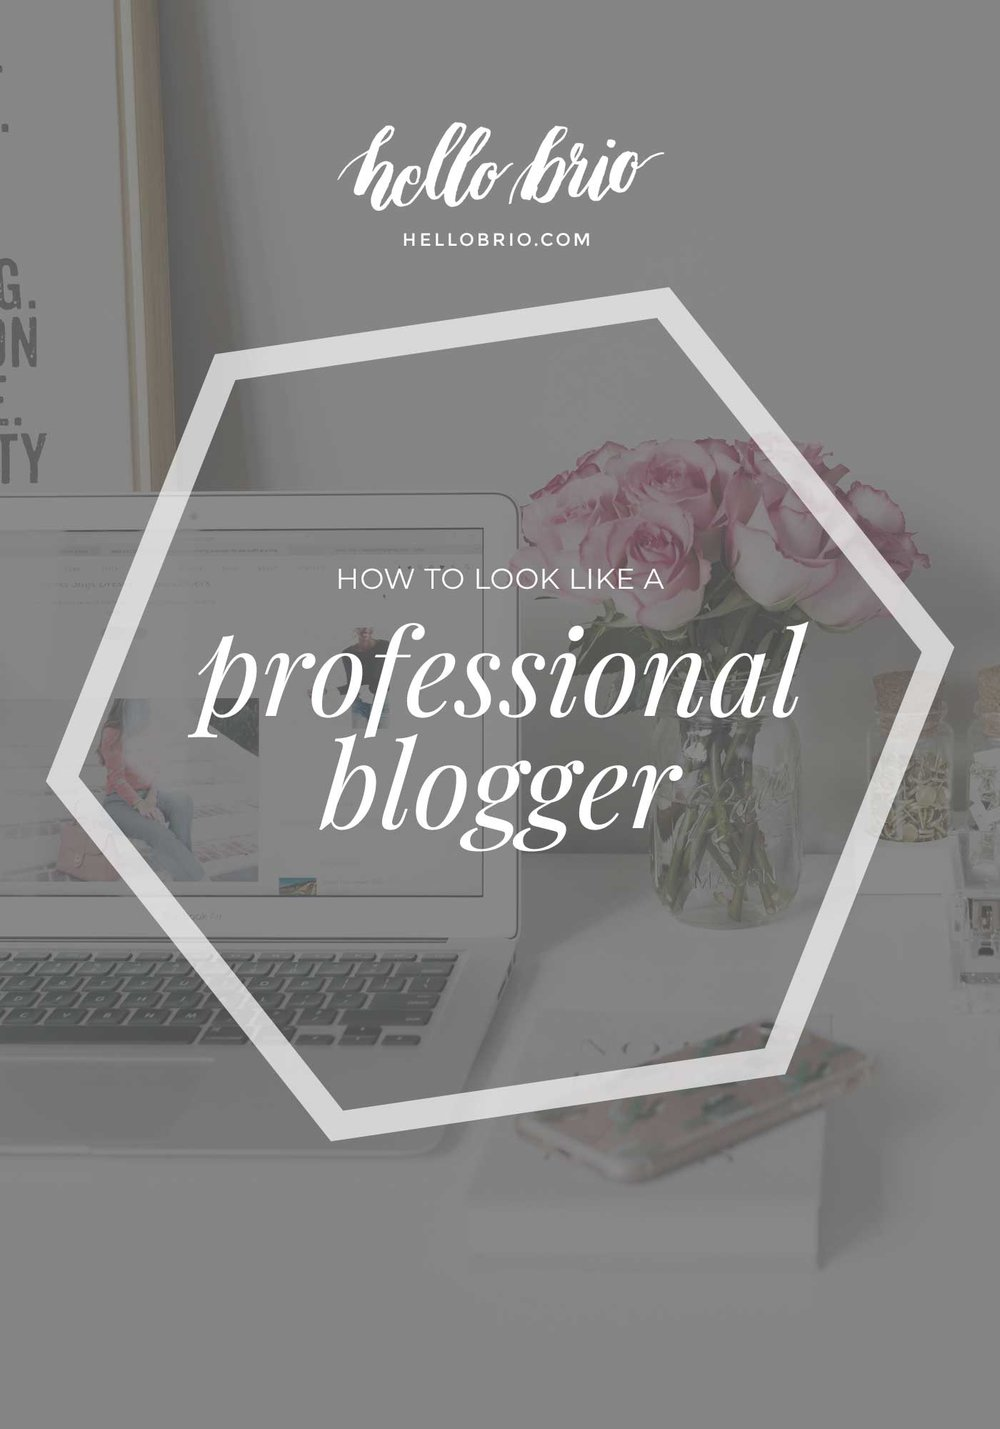 How to look like a professional blogger